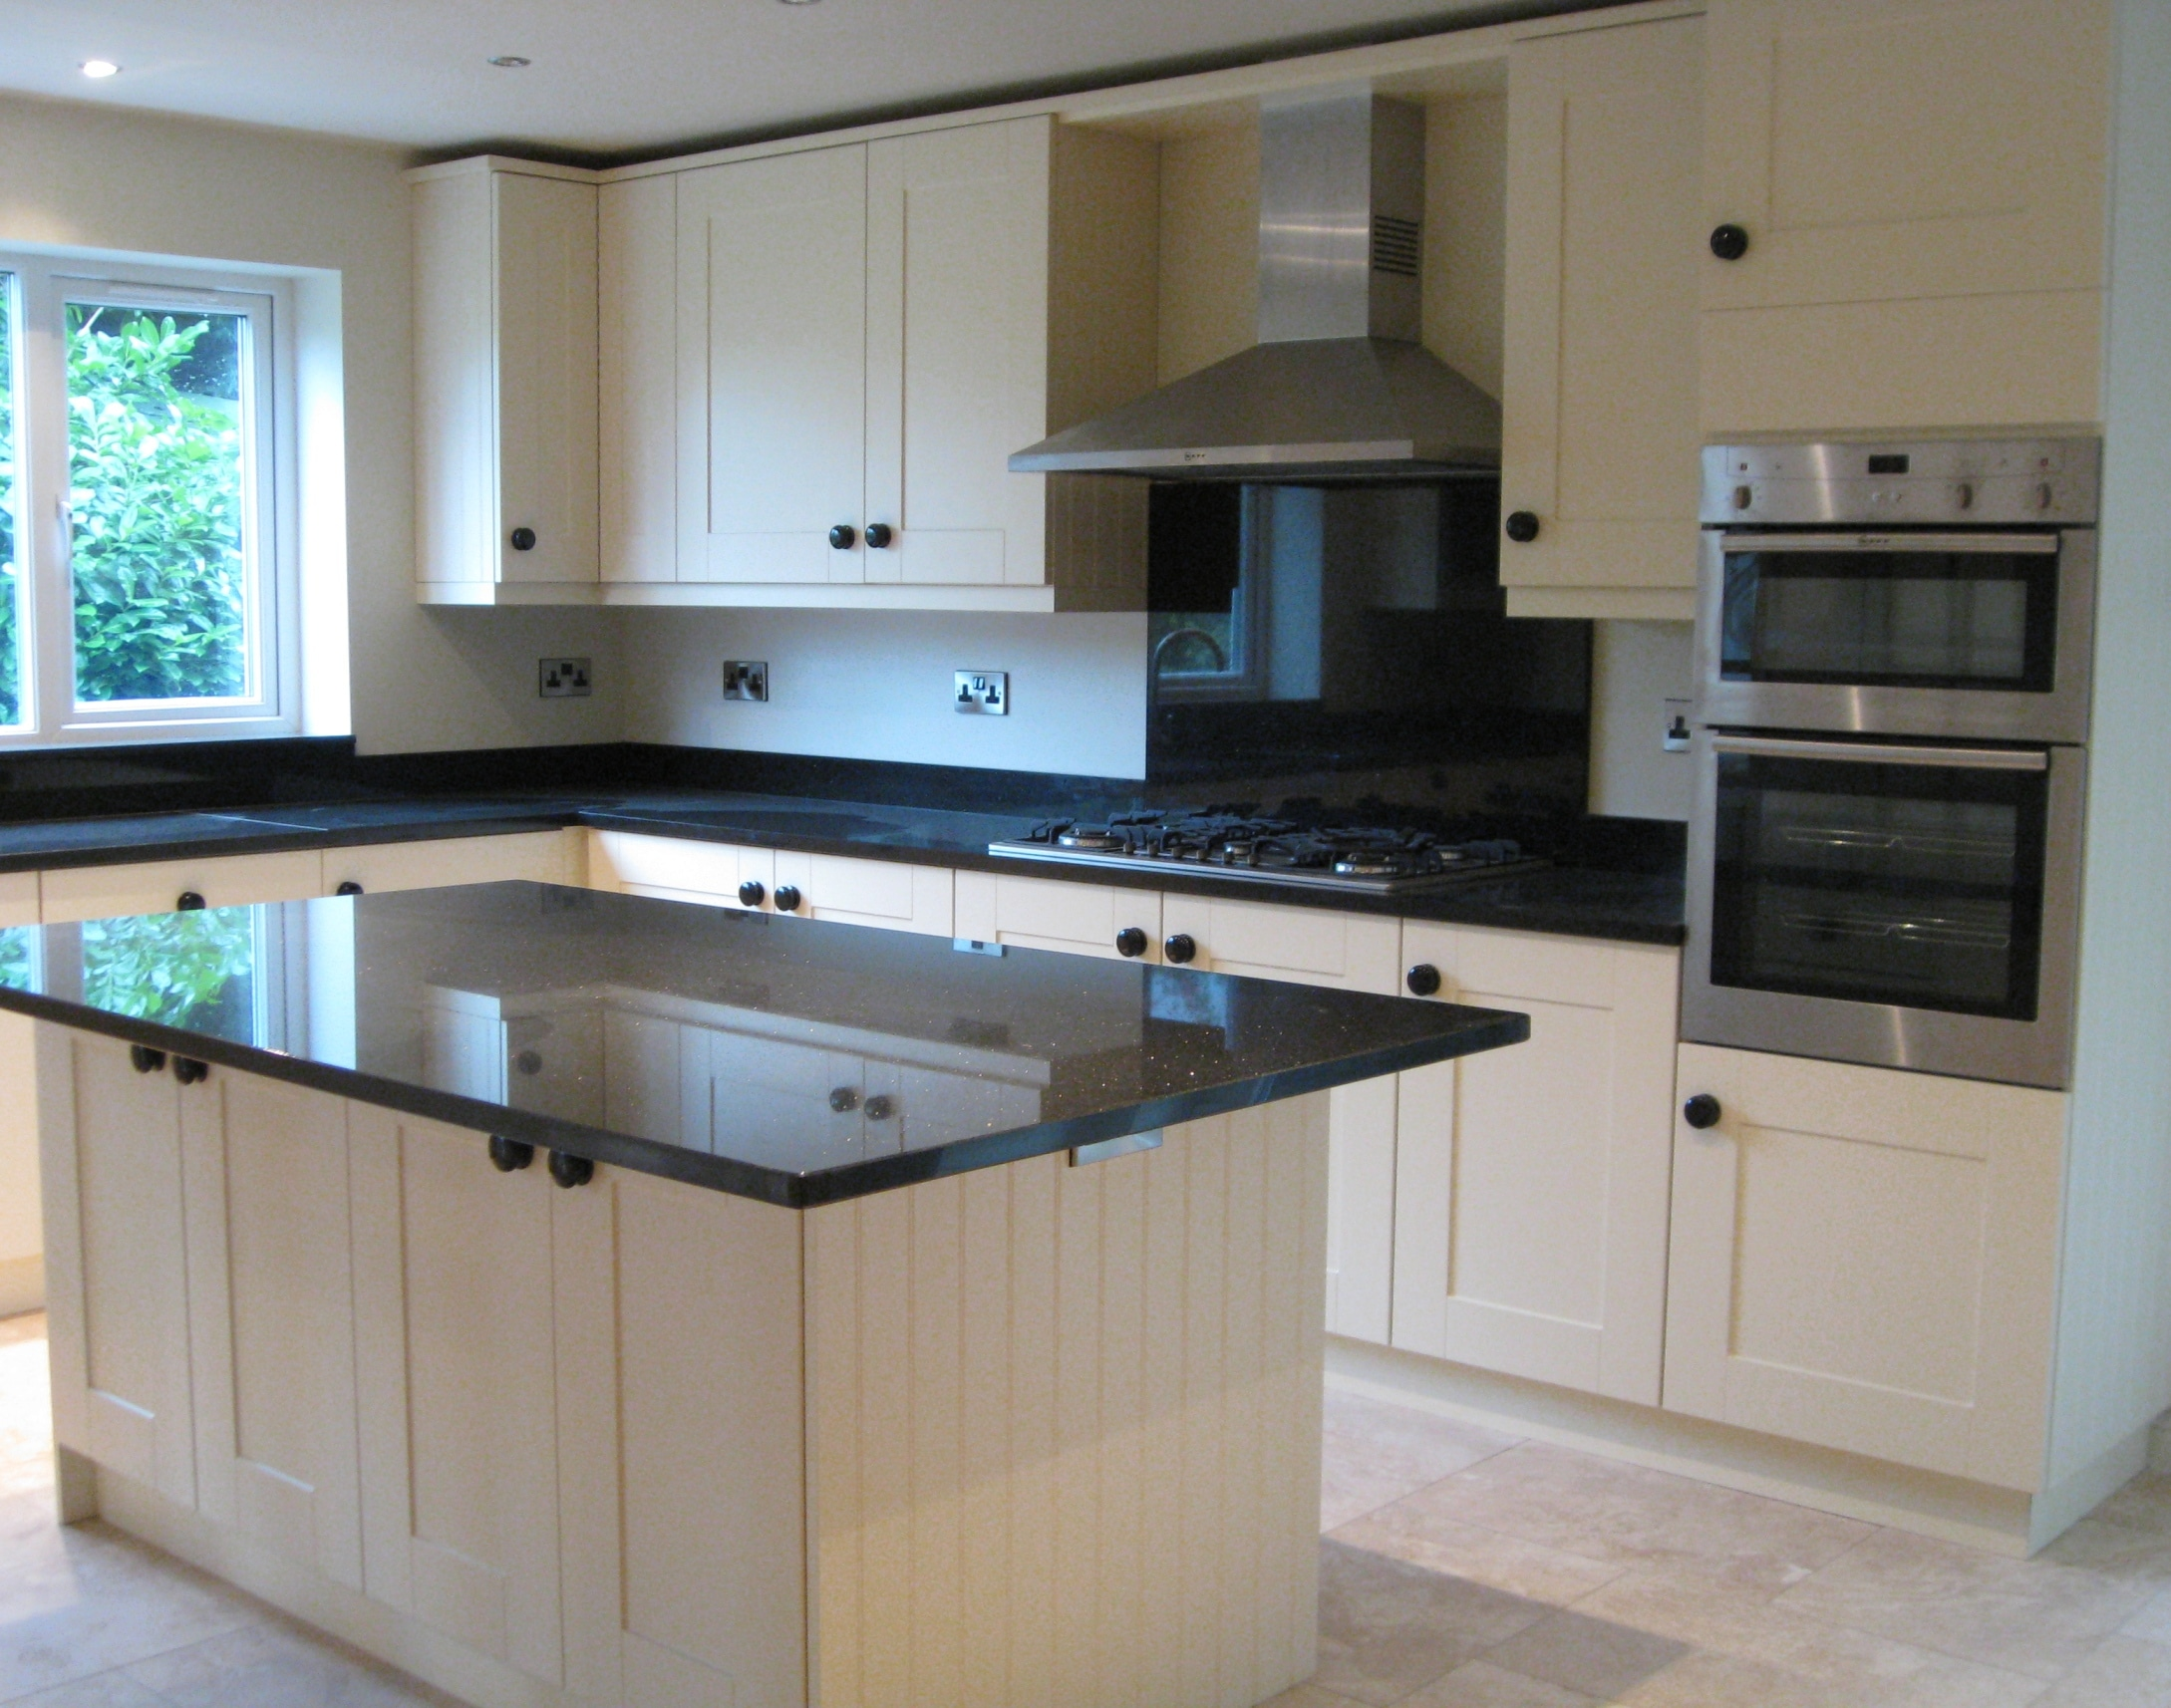 Kitchens Gallery Transforming Homes For Over 30 Years